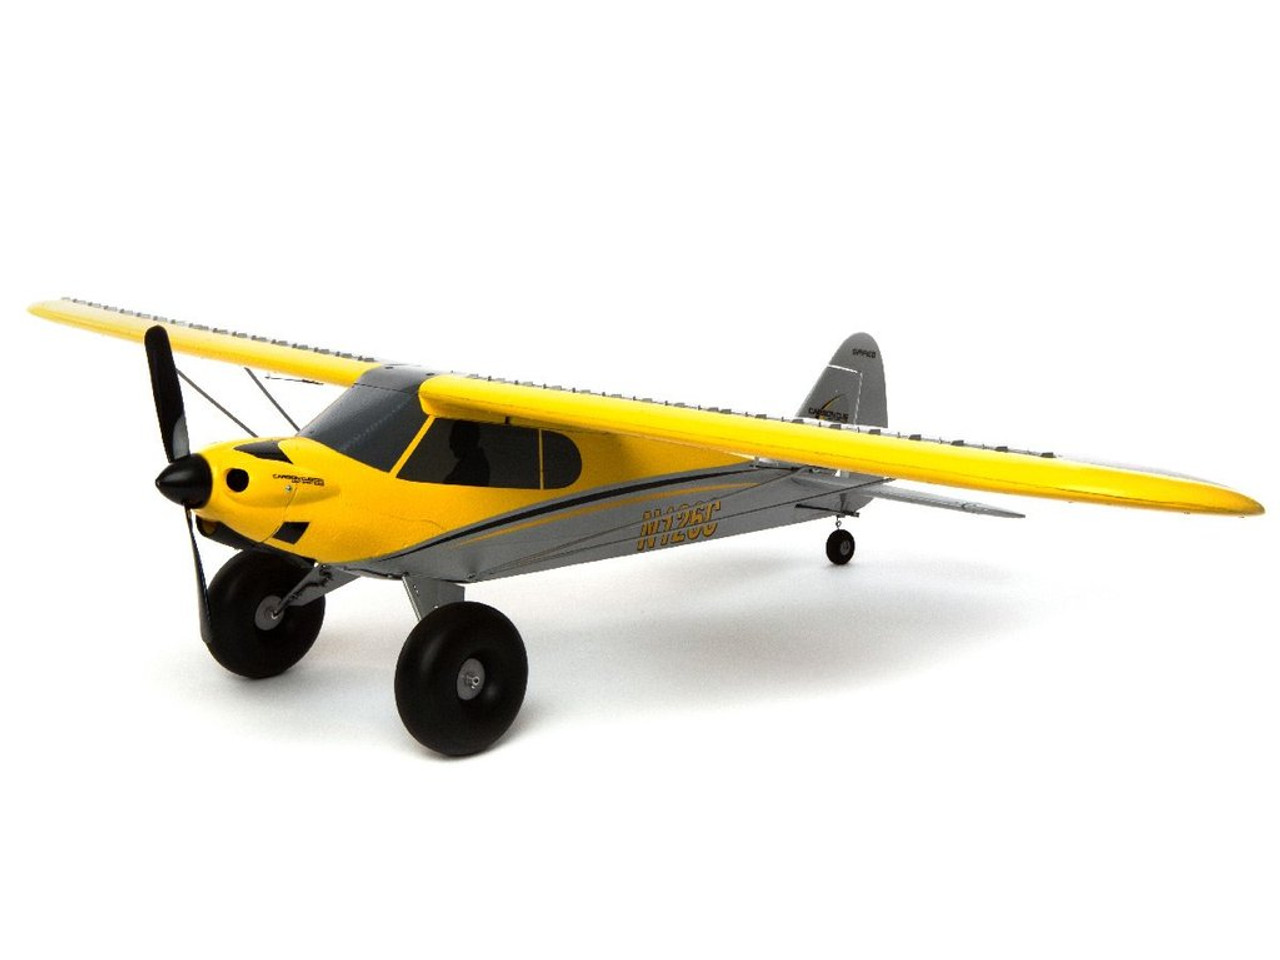 HobbyZone Carbon Cub S+ 1 3m Ready-To-Fly - Hobby Station